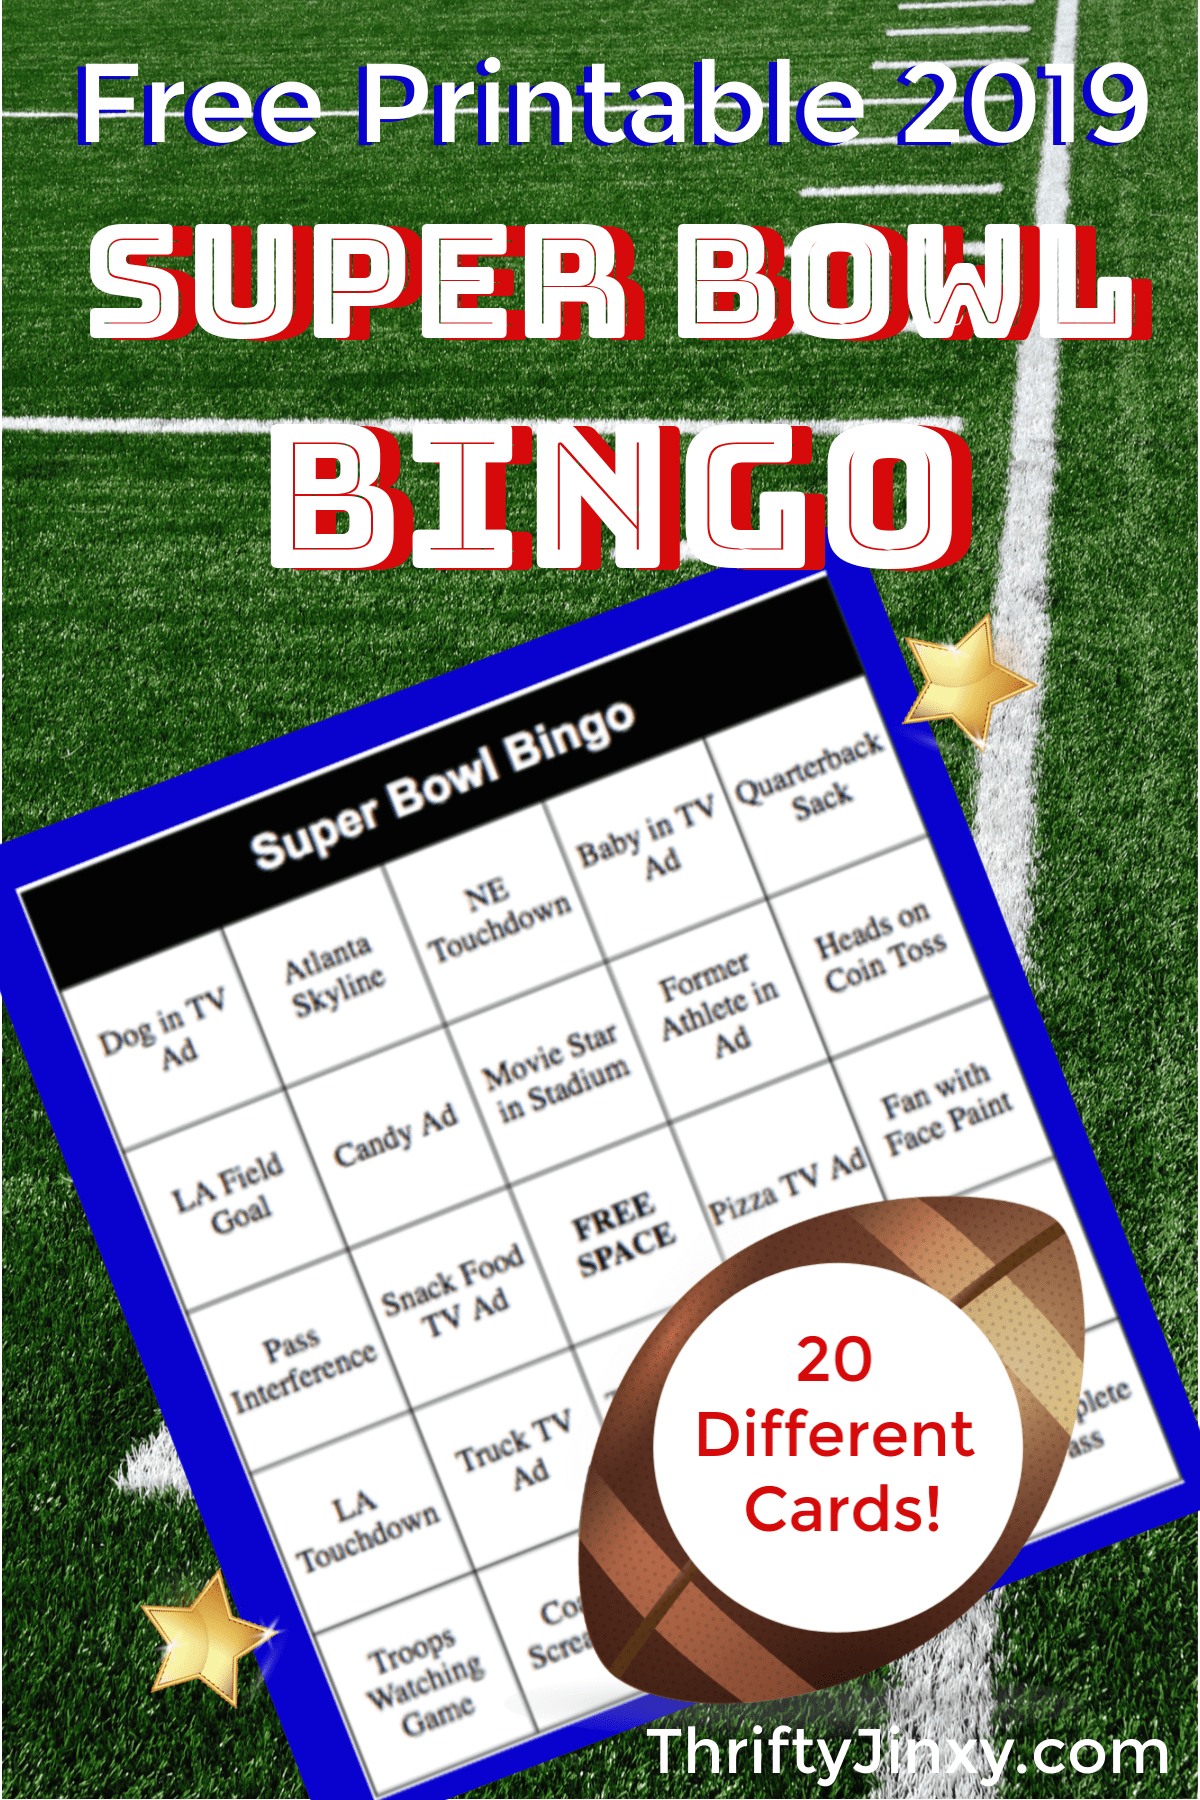 Add some fun to your Super Bowl Party or family gathering with these free printa…